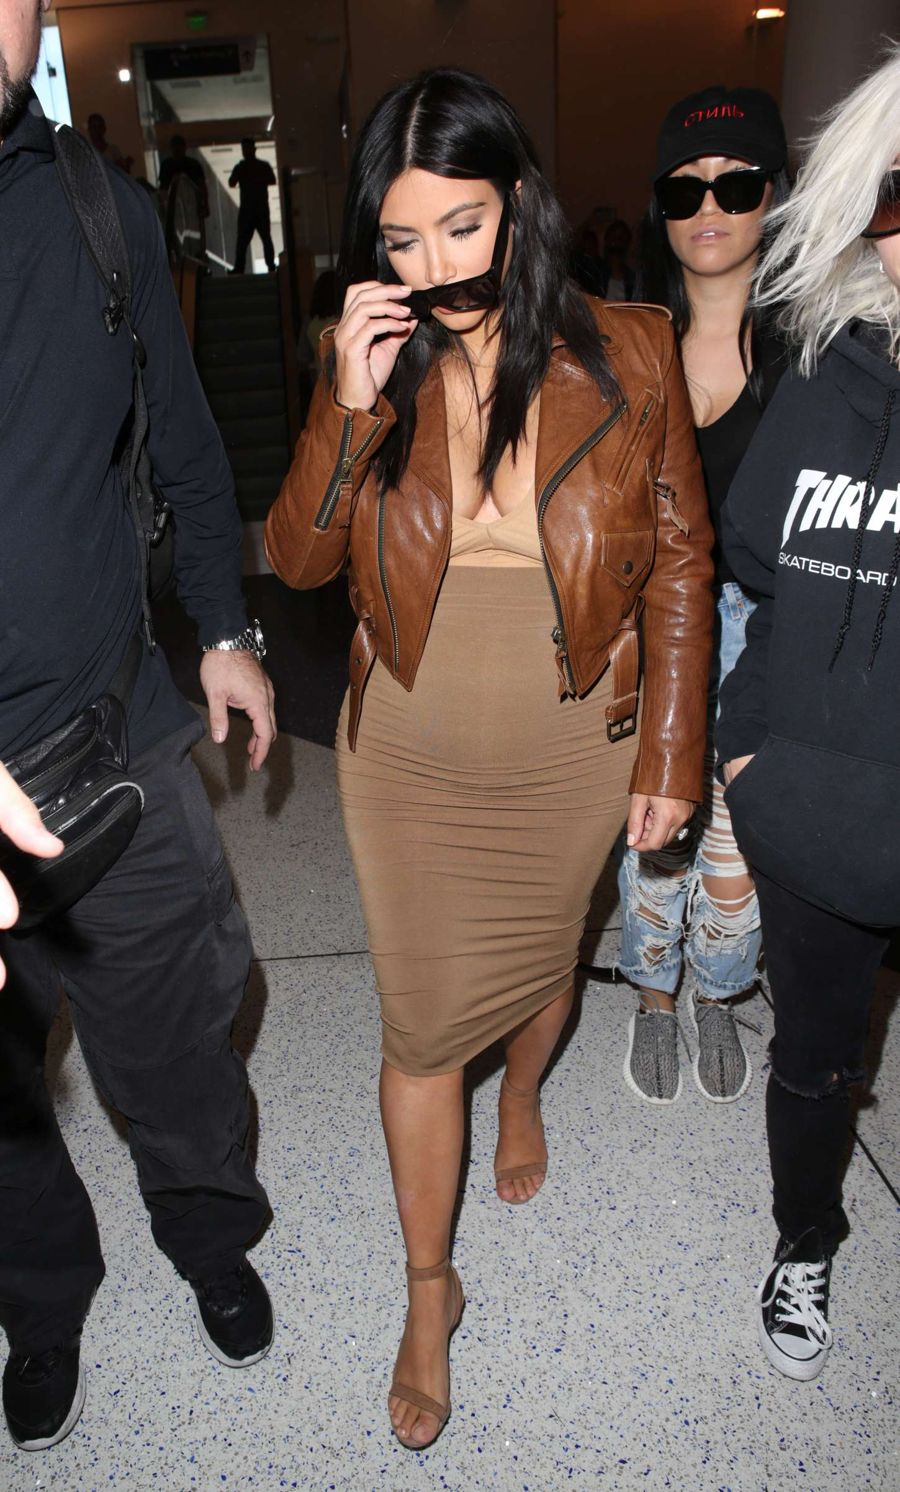 Pregnant Kim Kardashian shows off Shorter Hair in LAX